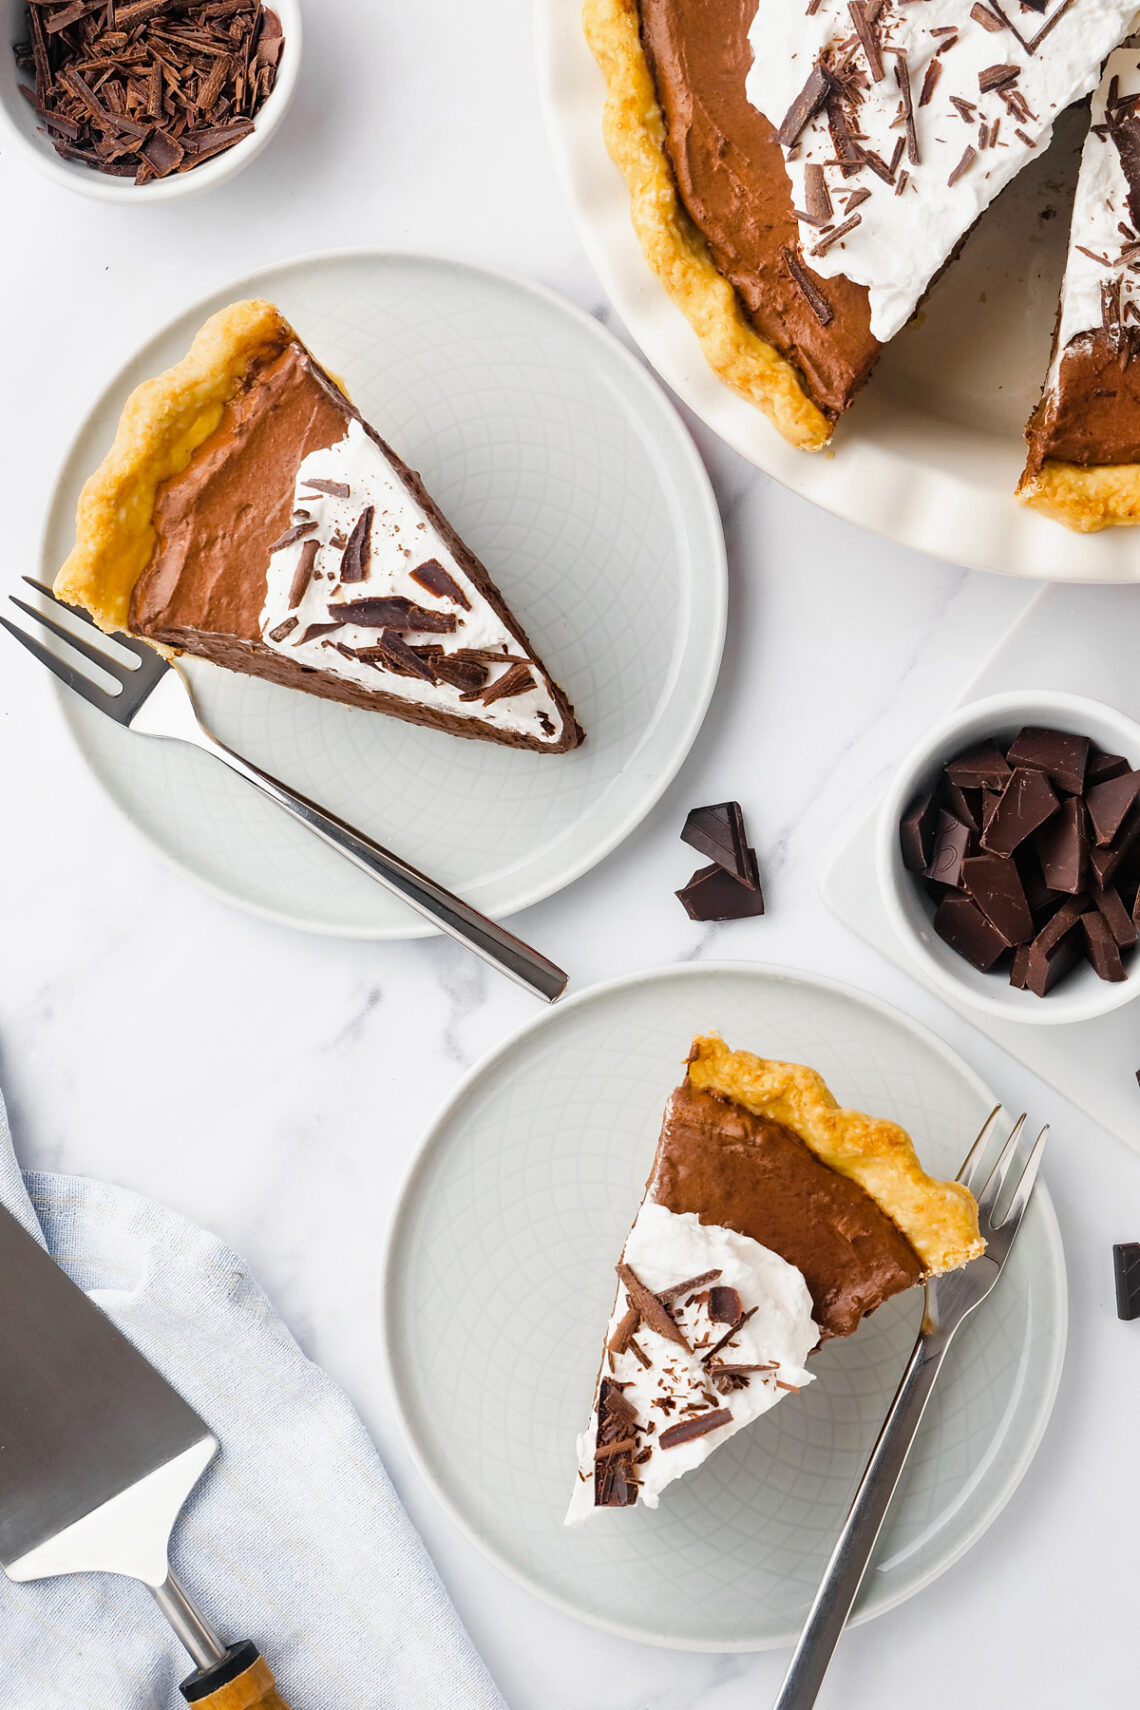 Chocolate pie slices to down view